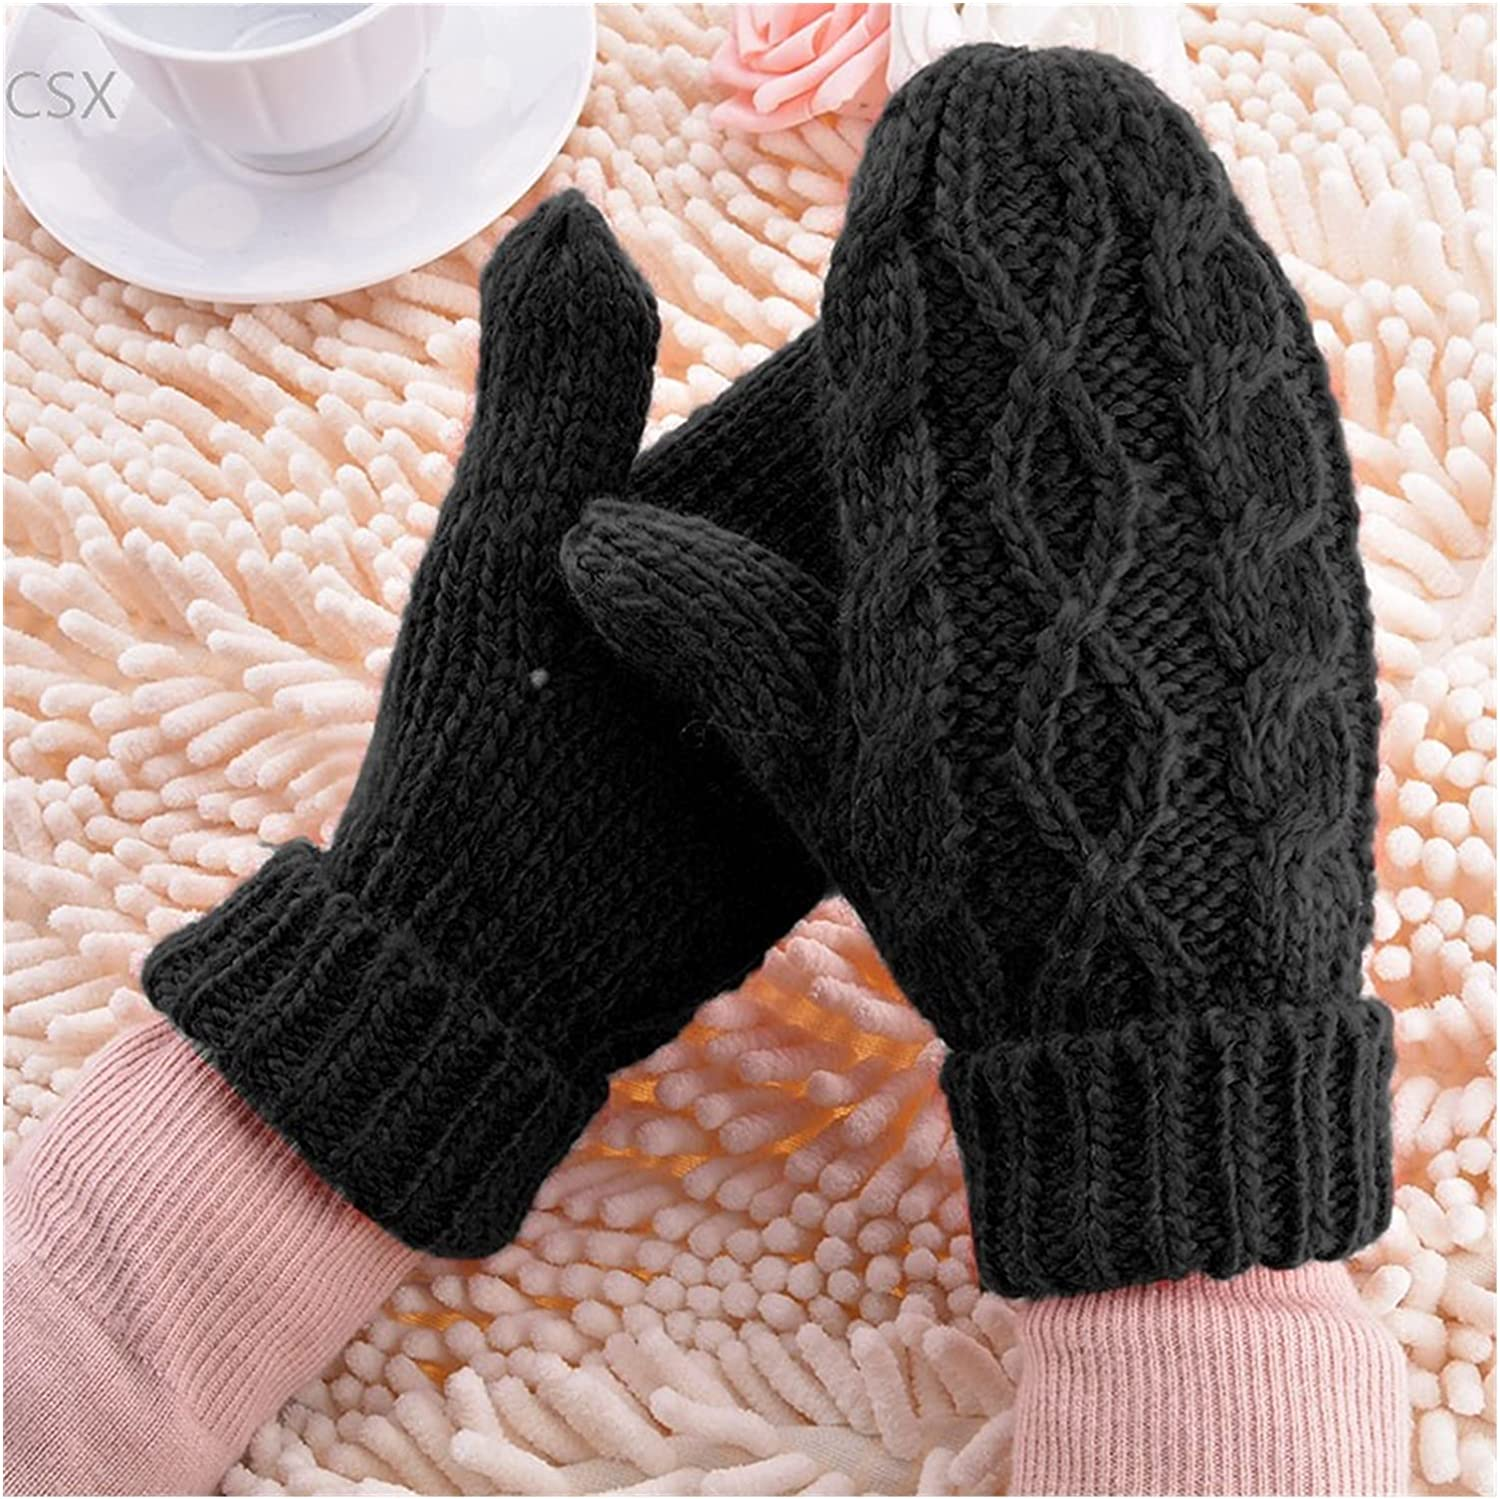 JSJJAWS Winter Gloves Warm Winter Gloves Women Mittens 8 Color Woman Ladies Lovely Knitted Gloves Girls Gift (Color : Black)